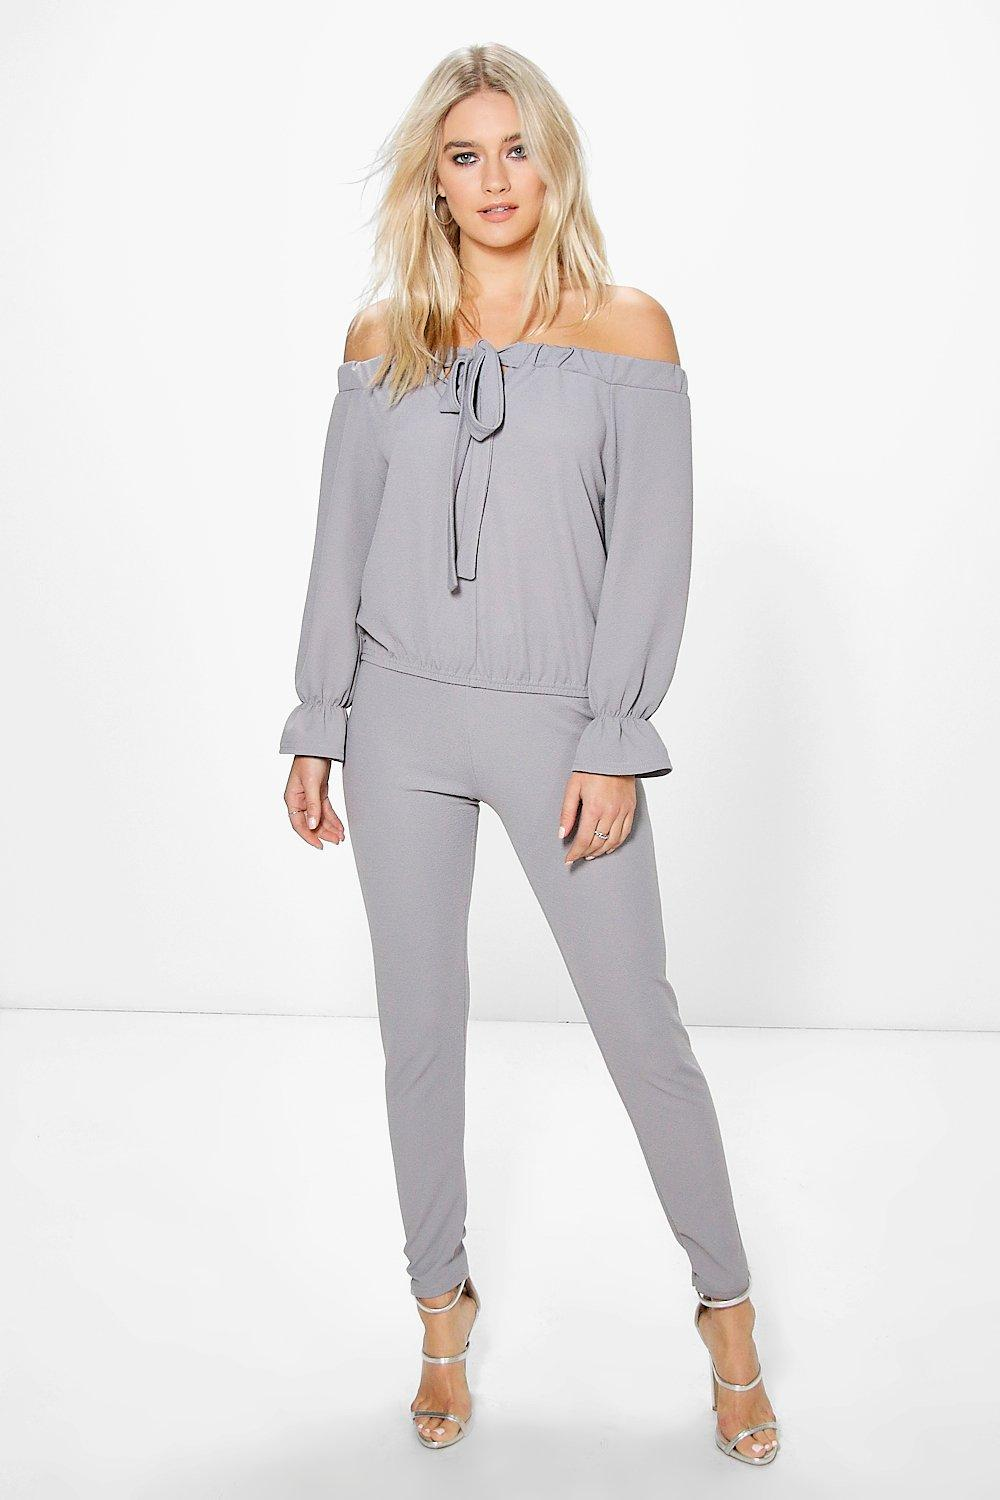 c81819da2c8d43 Jenny Off The Shoulder Top And Trouser Co-Ord Set. Hover to zoom